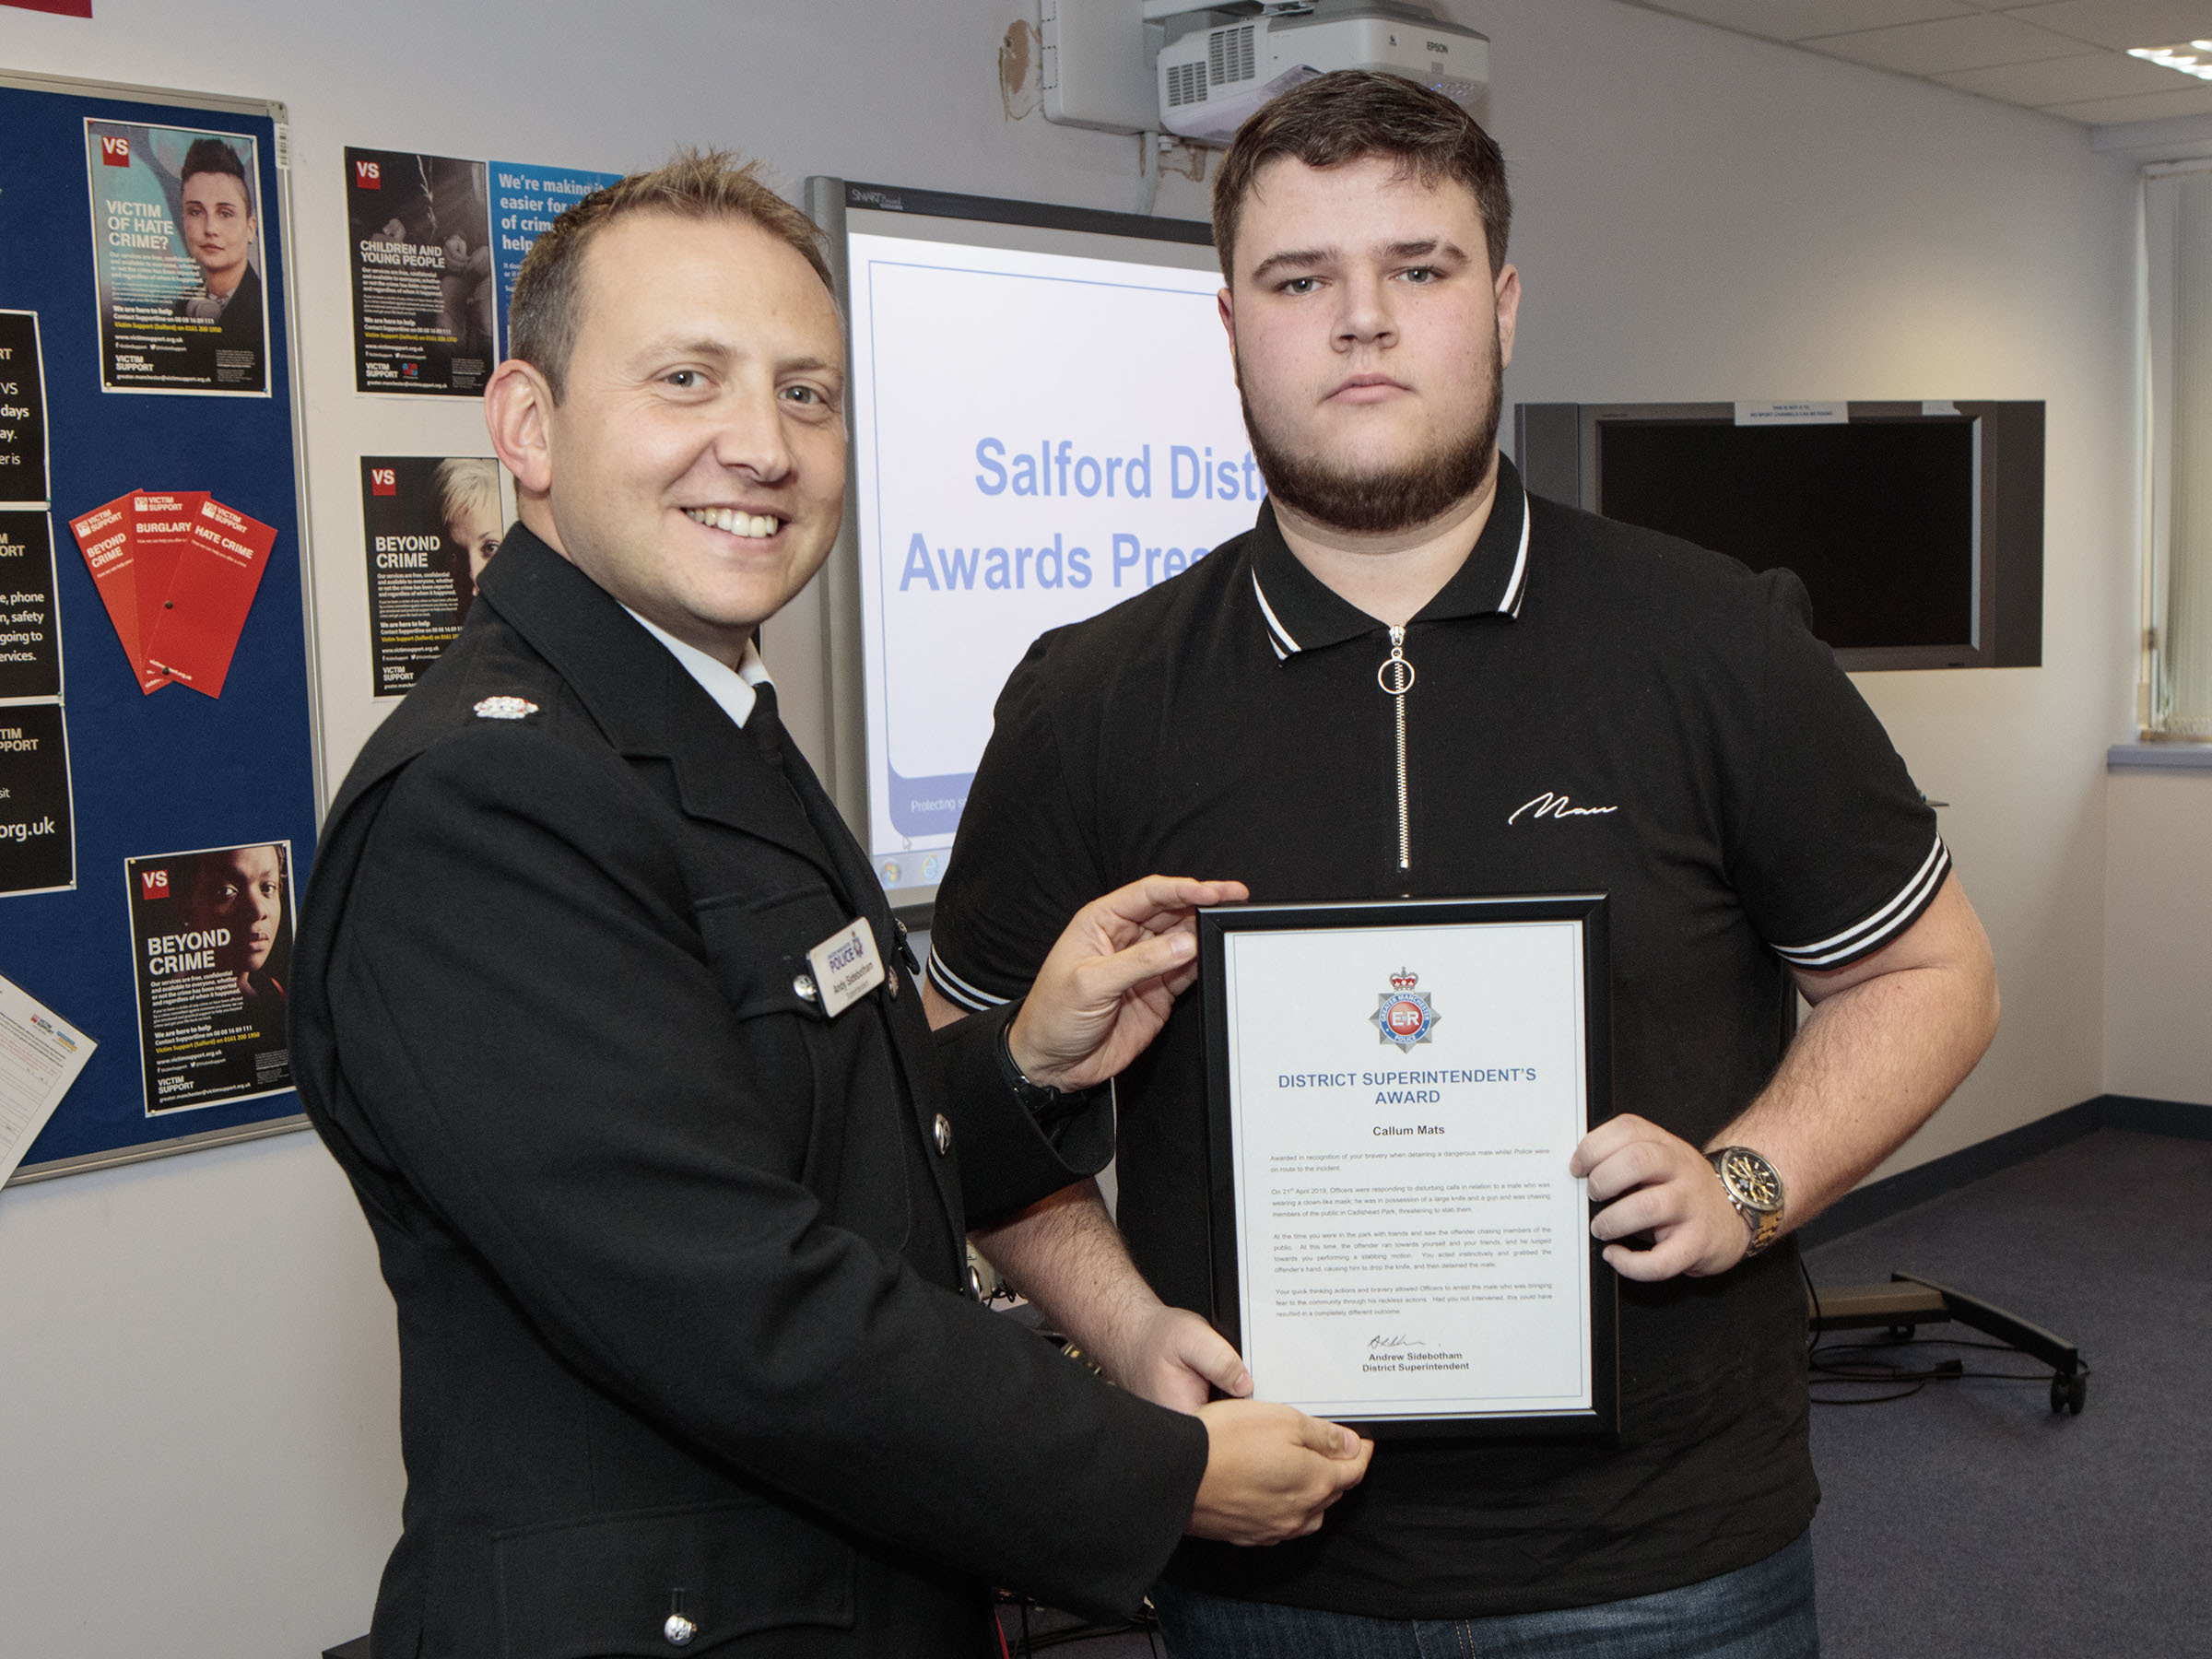 Heroic University of Chester teenager who tackled knife-wielding, gun-carrying man with clown mask is honoured by police